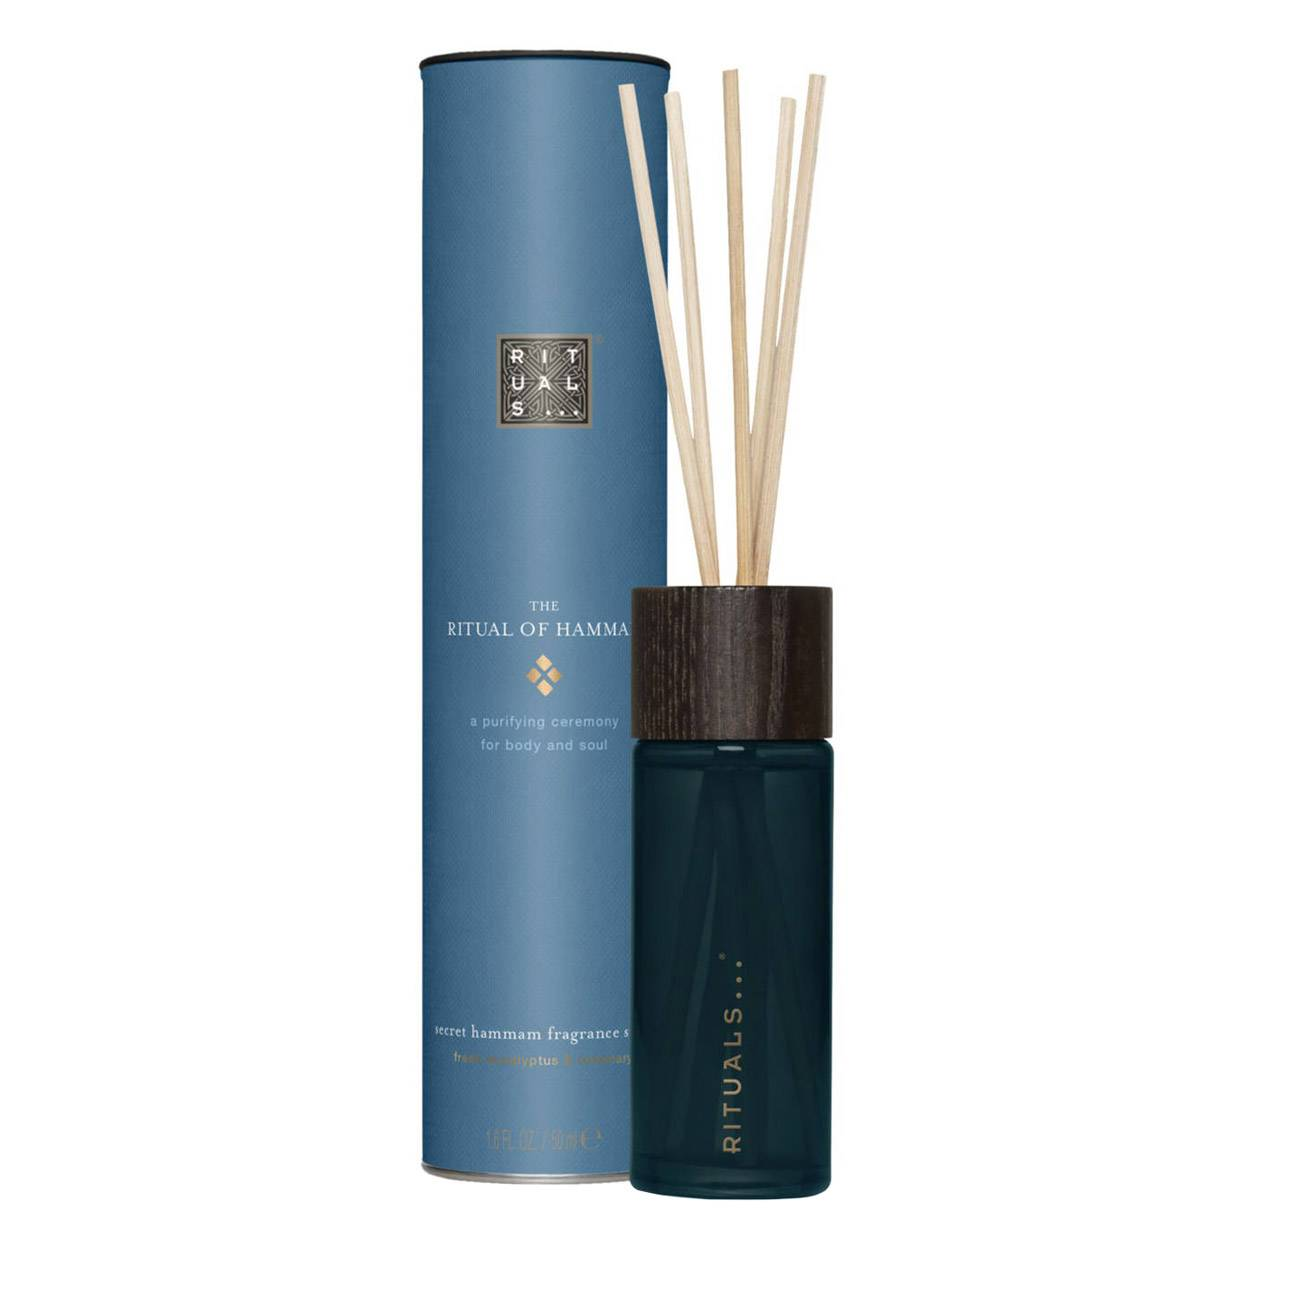 THE RITUAL OF HAMMAM MINI FRAGRANCE STICKS 50 Ml imagine produs